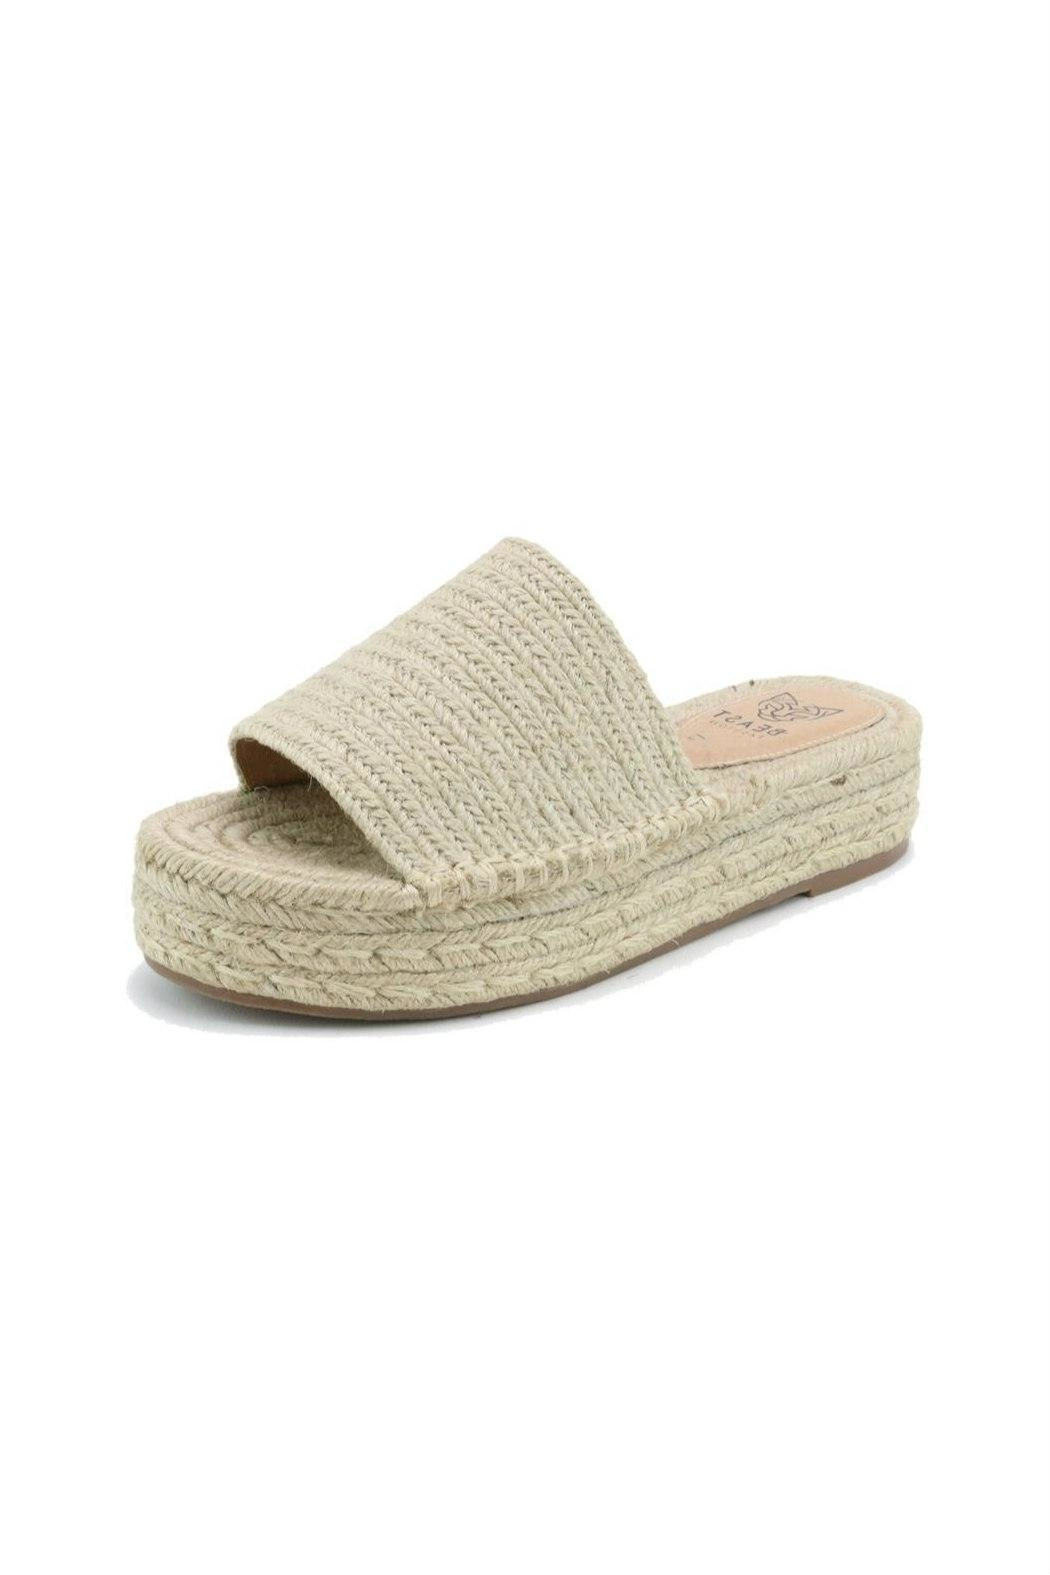 Beast Fashion Tia Espadrille Slide - Front Cropped Image